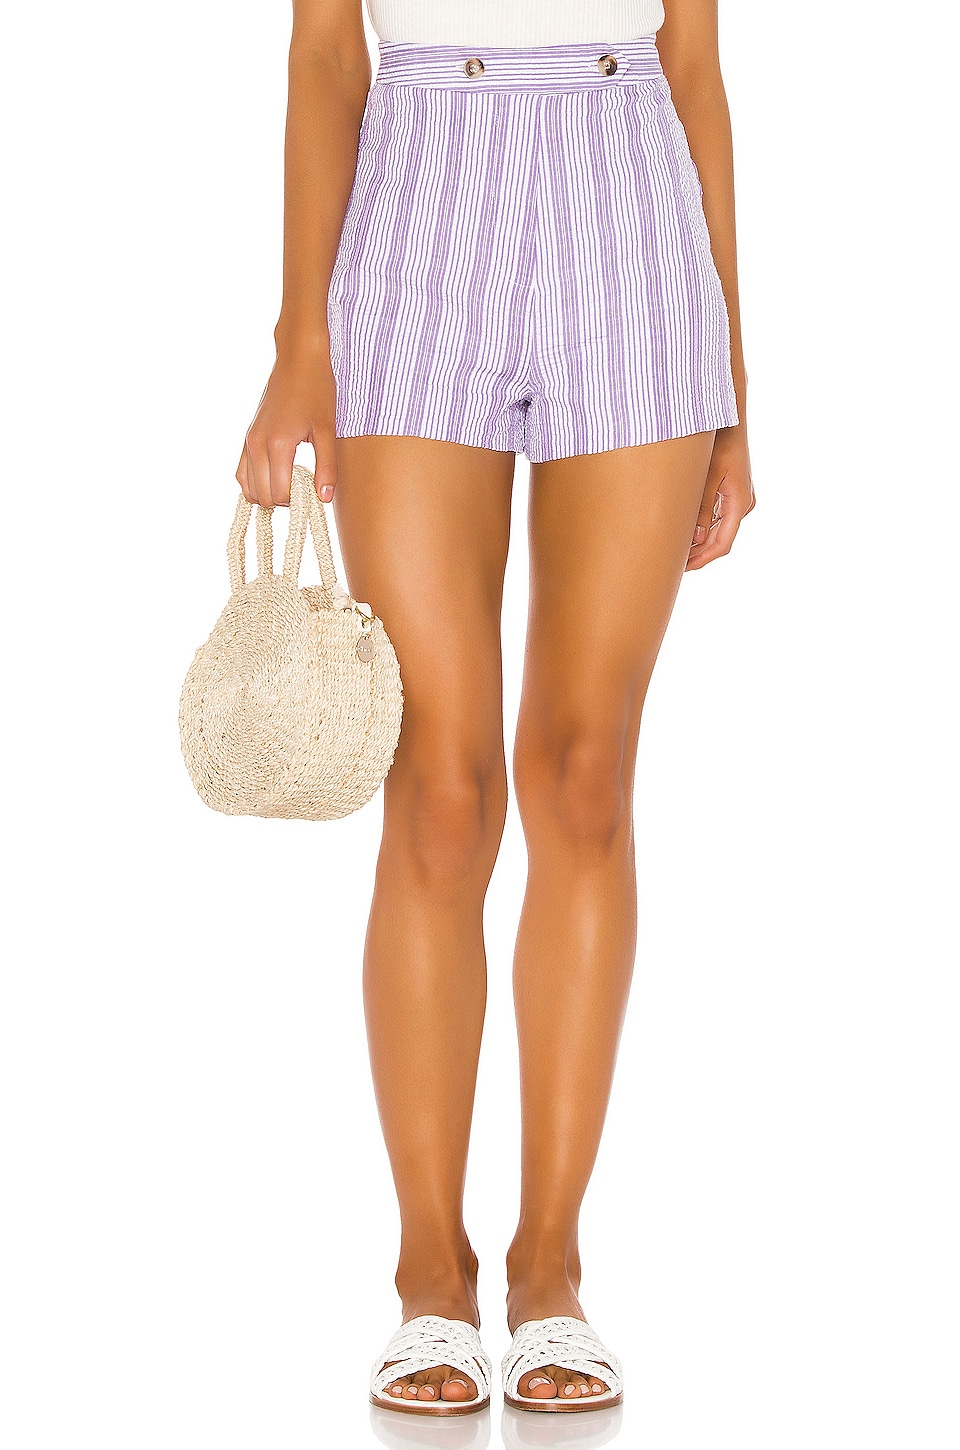 Tularosa Mavis Short in Lilac & White Stripe